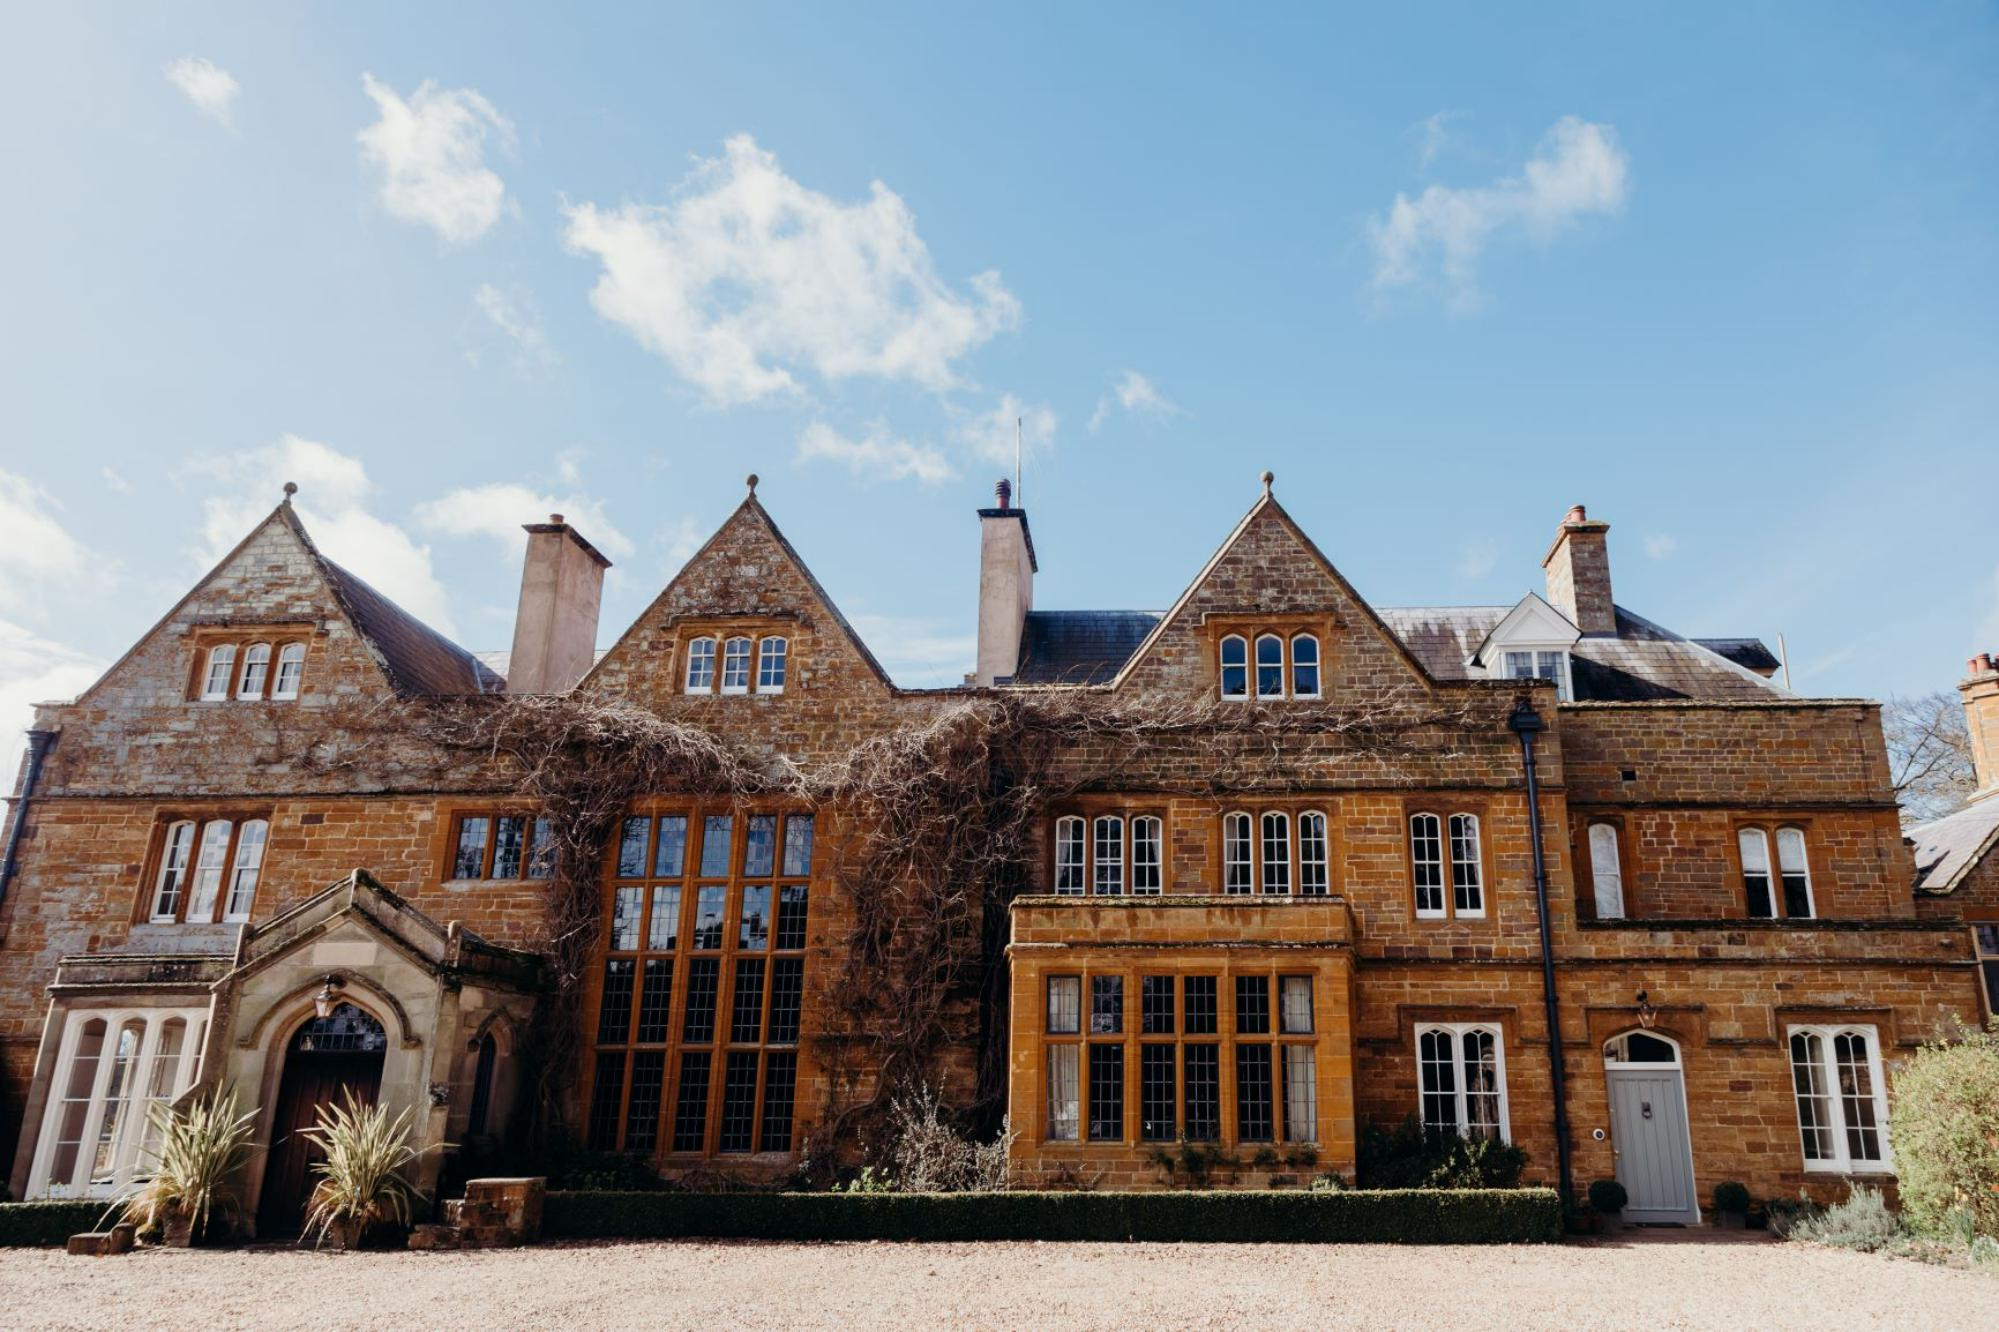 B&Bs in Northamptonshire holidays at Cool Places